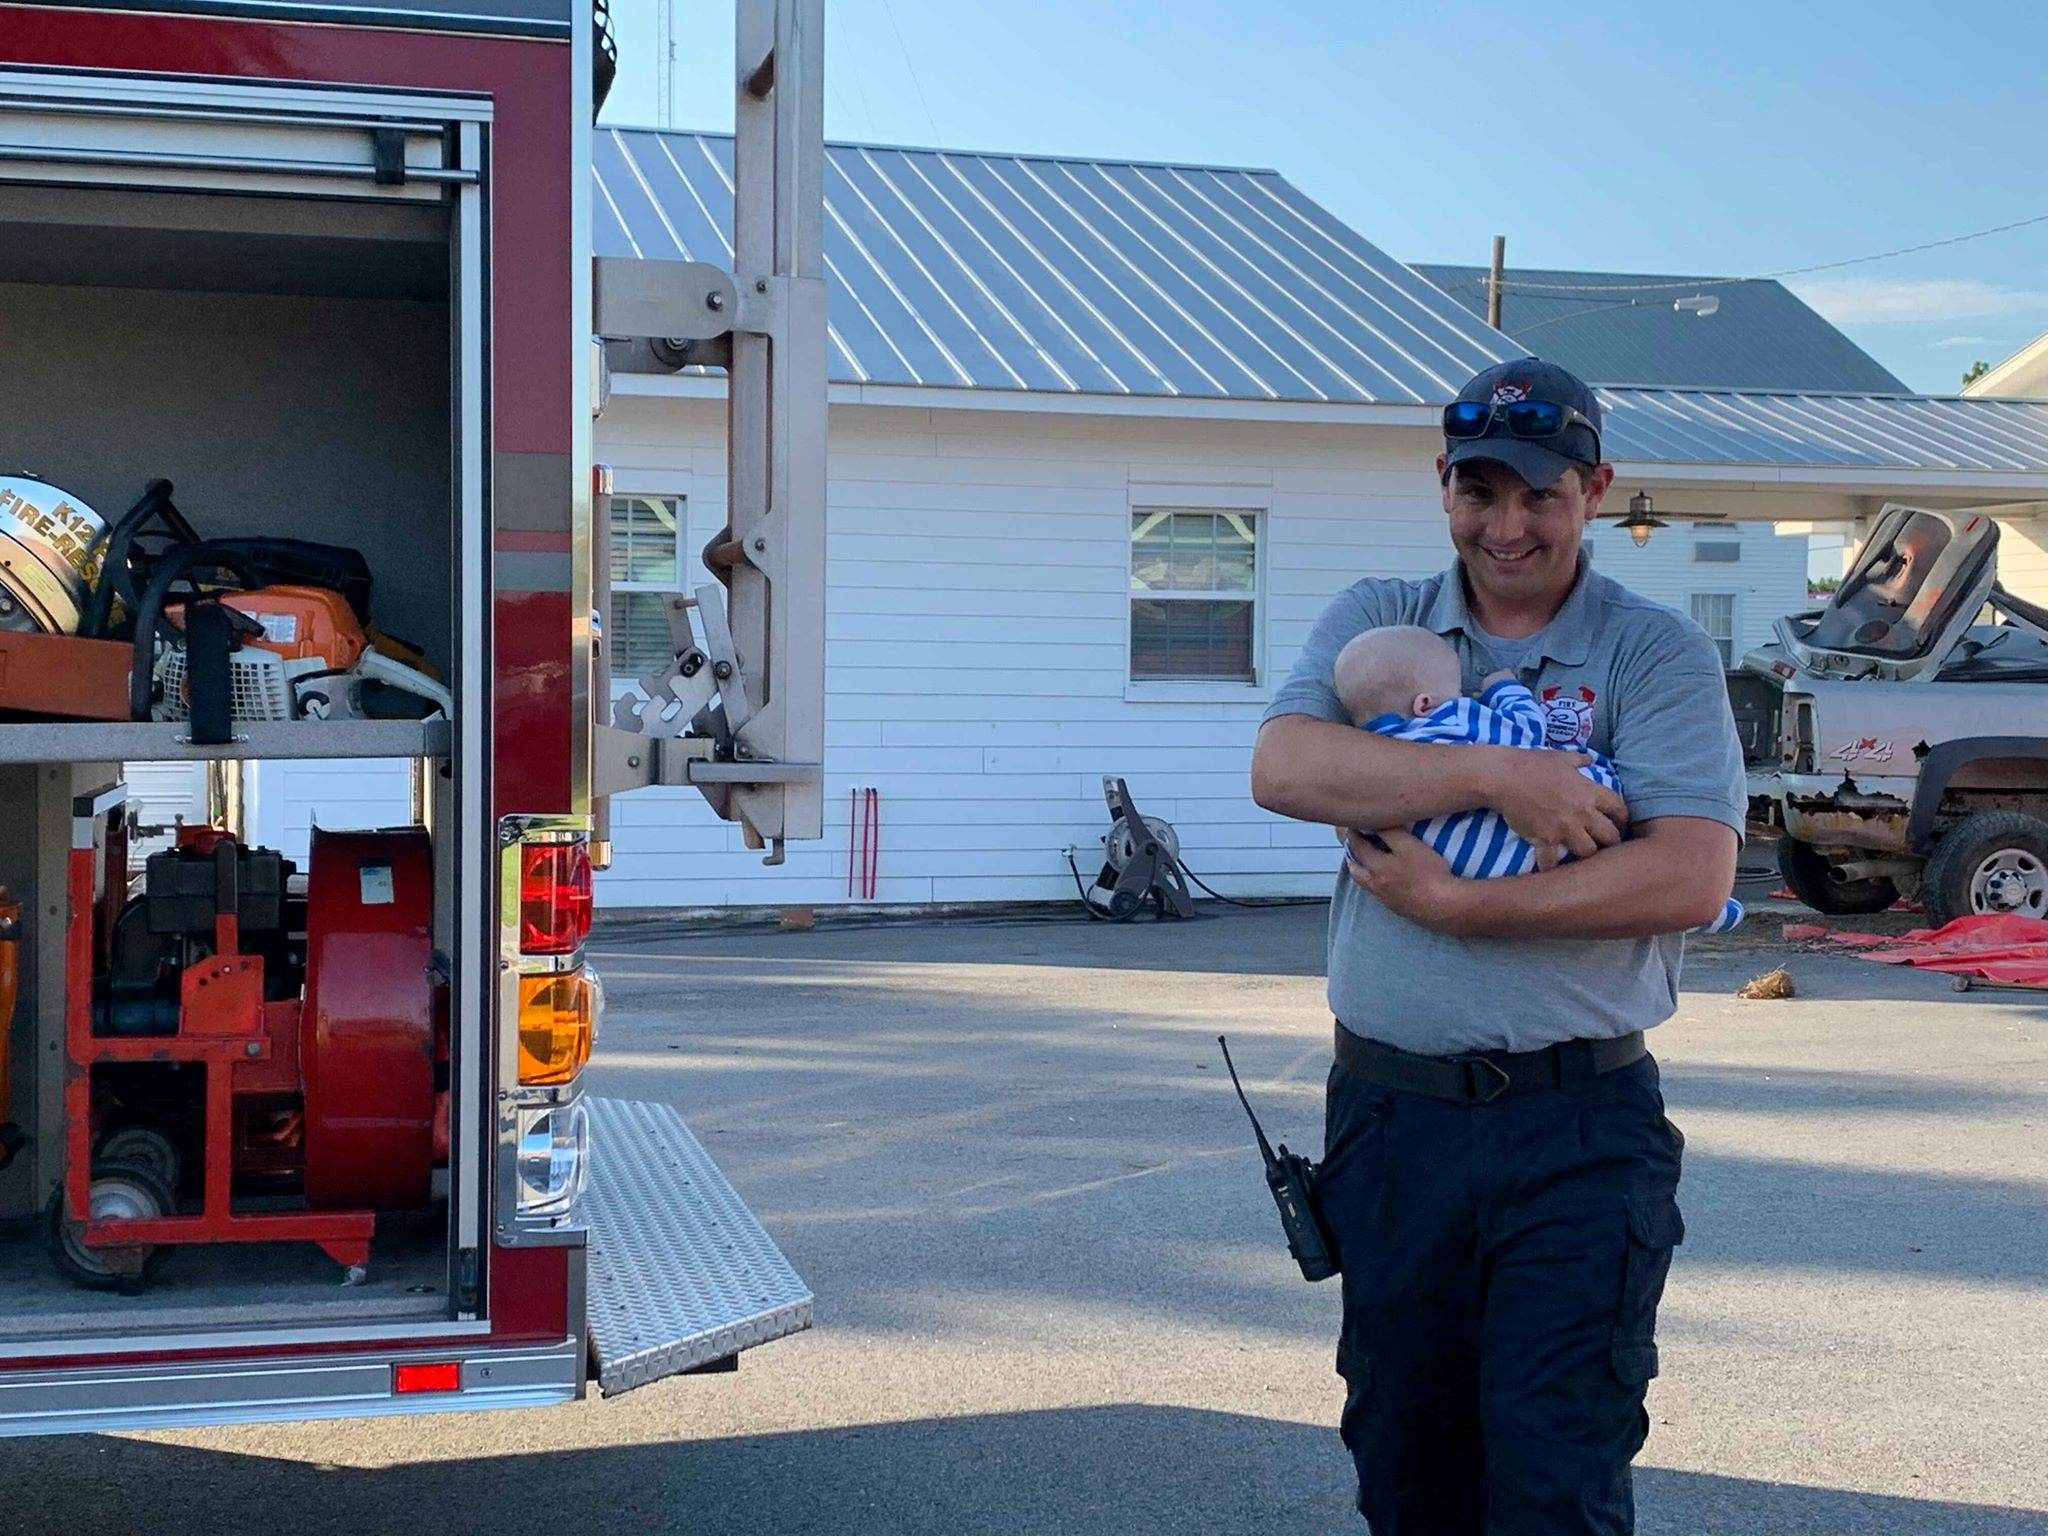 A man holds a baby next to a fire truck